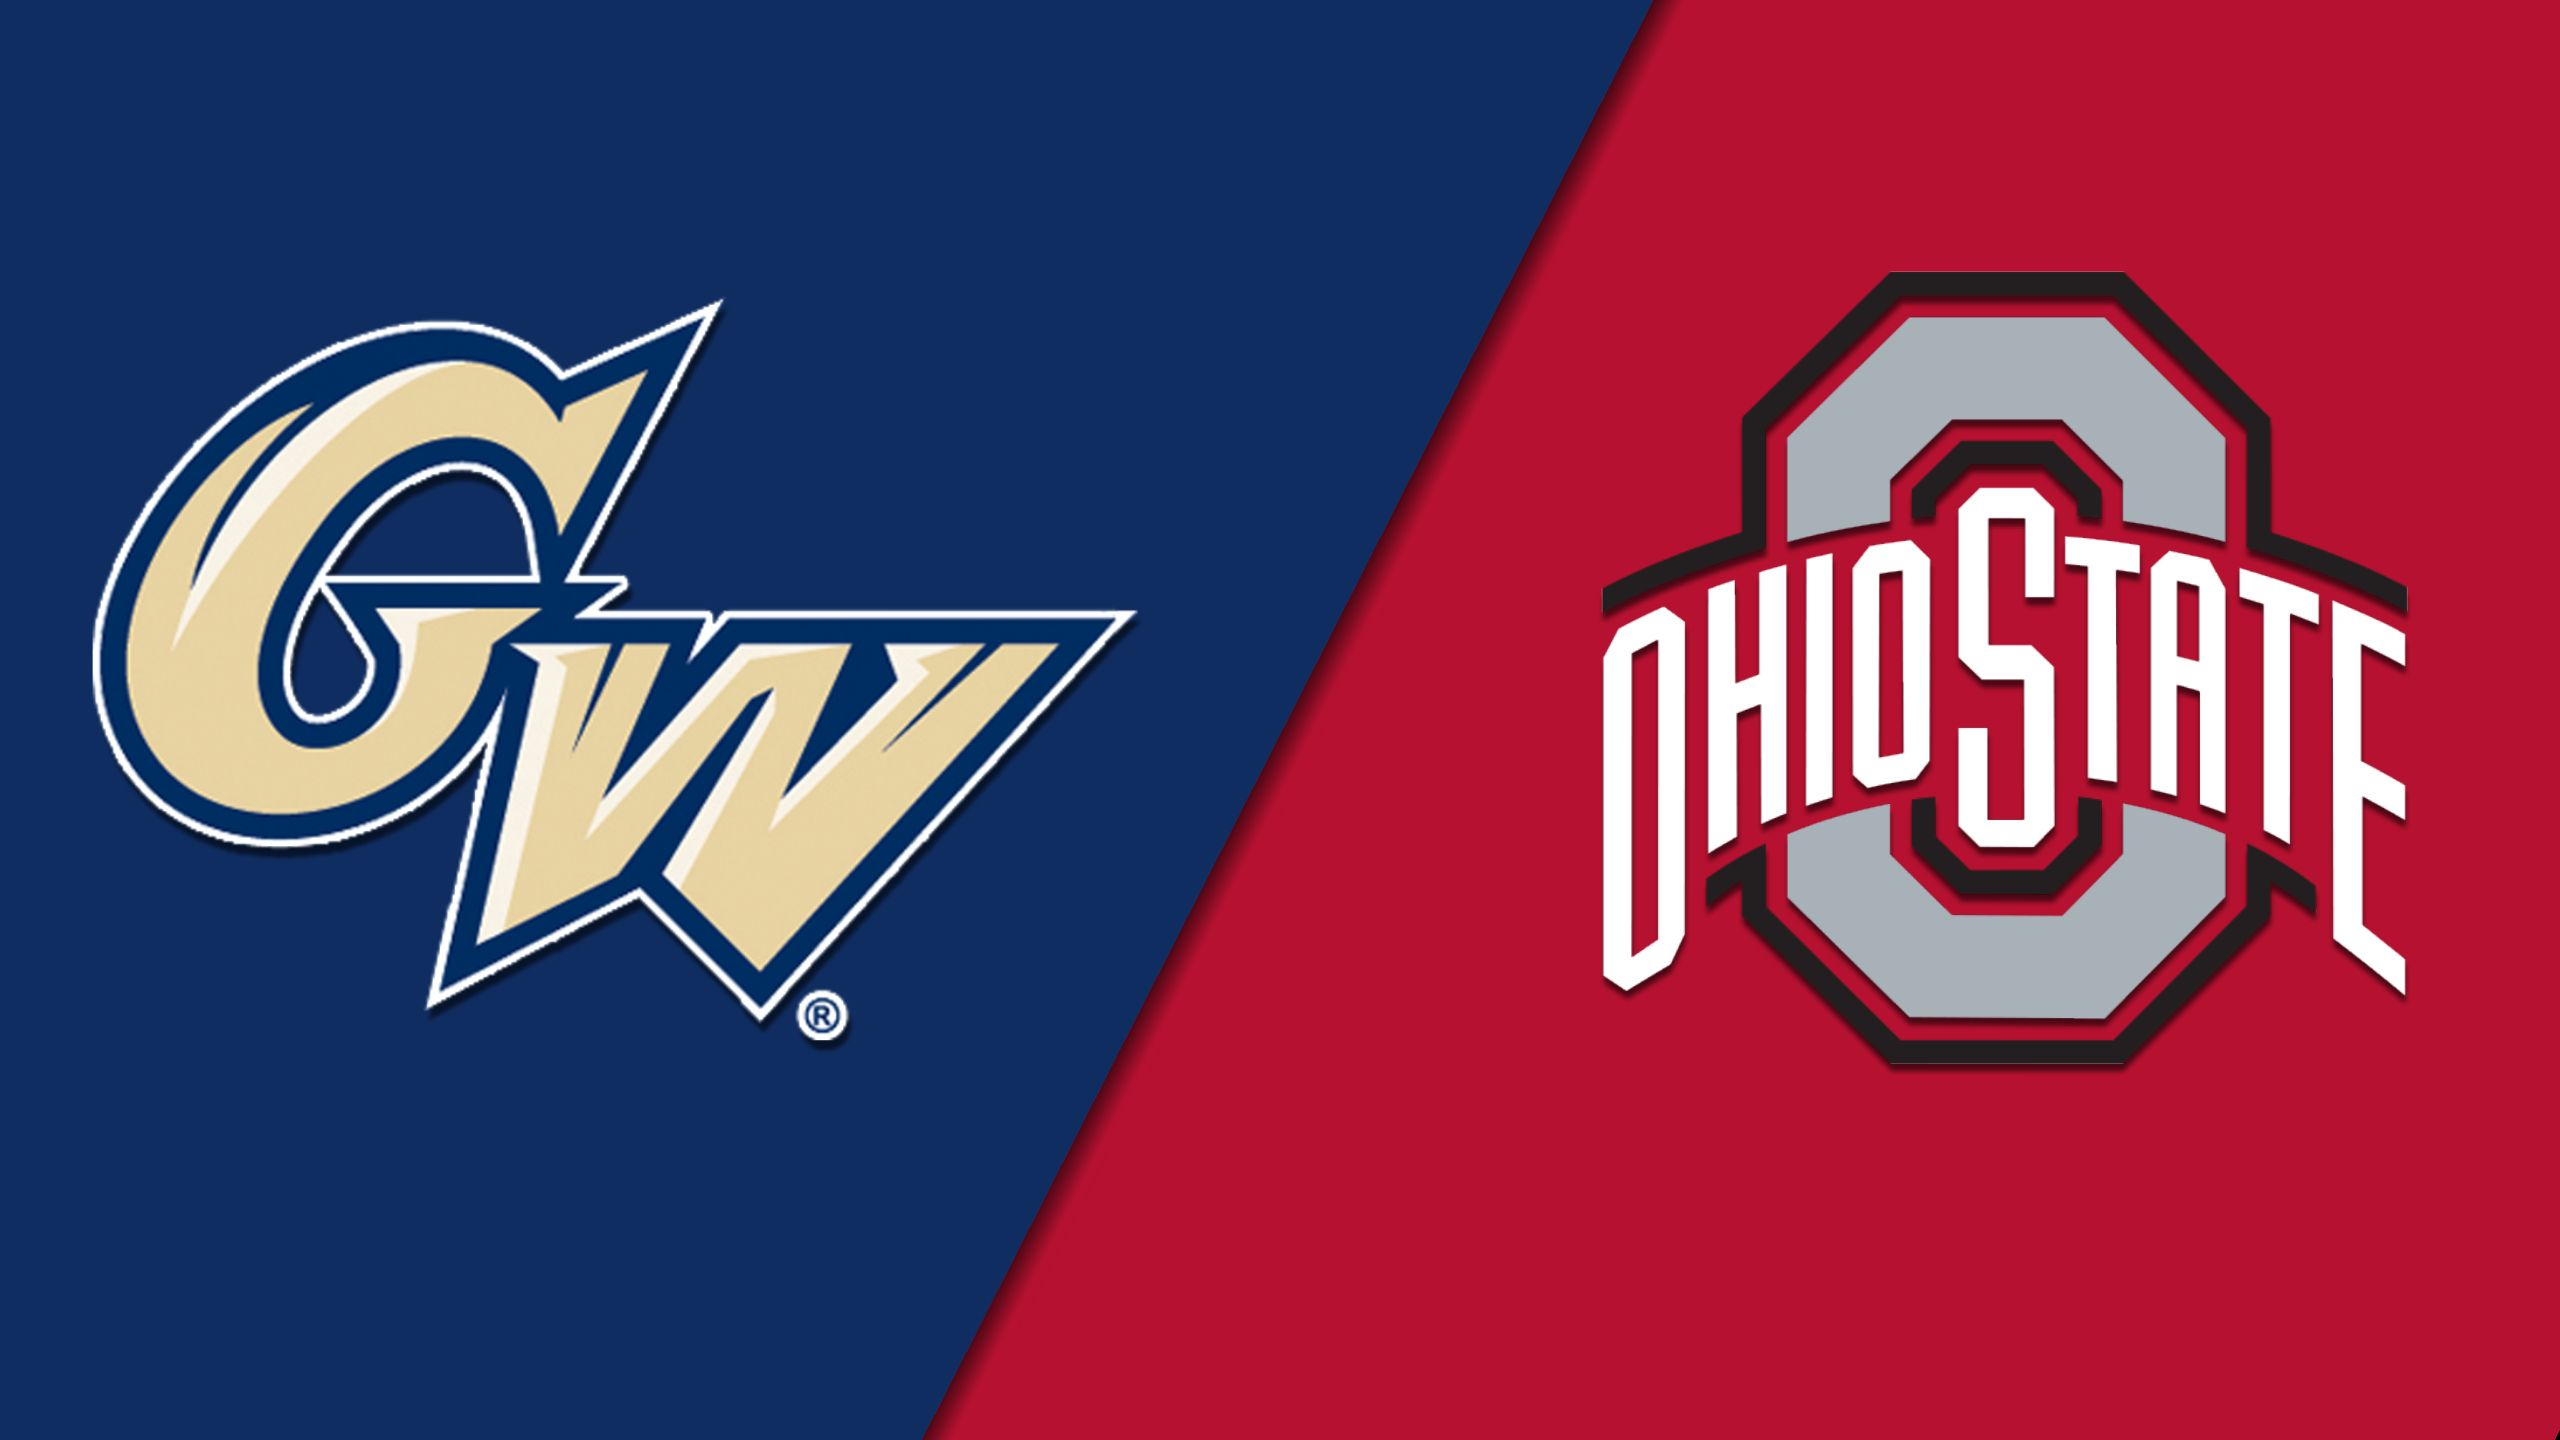 #14 George Washington vs. #3 Ohio State (First Round) (NCAA Women's Basketball Championship)